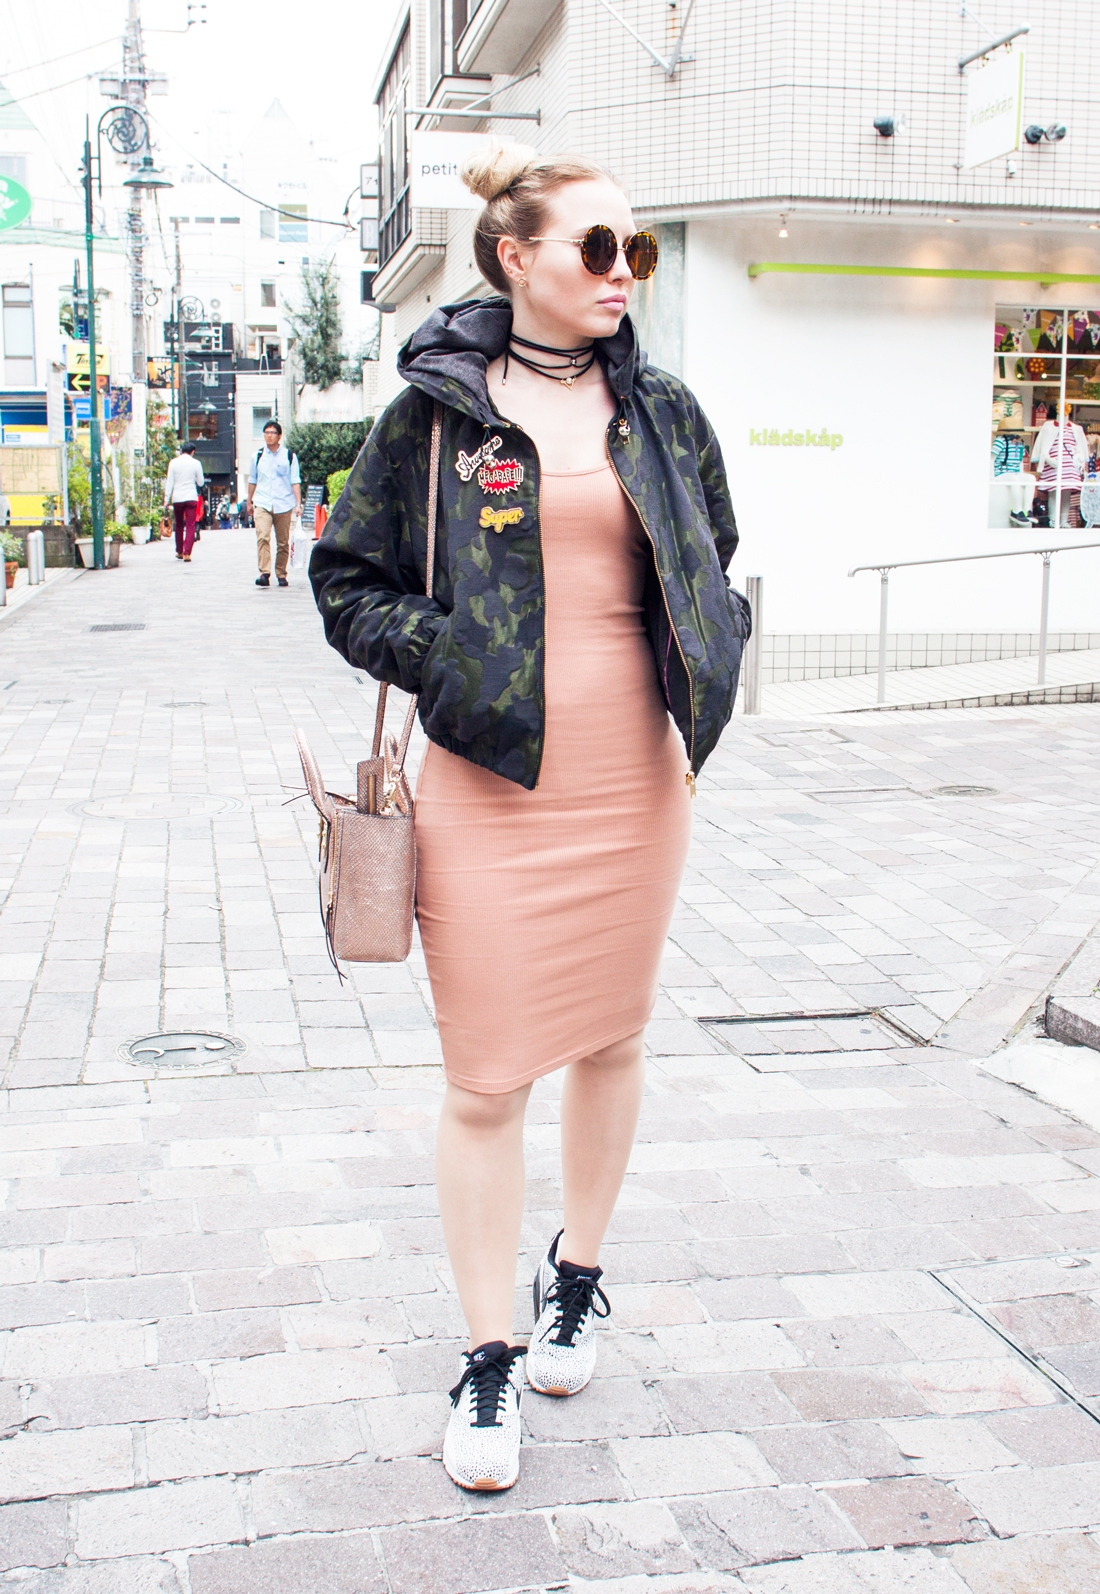 space buns, two buns hairstyle, space buns hairstyle, camouflage bomber jacket, jiyugaoka, henri bender bag, nike max air, nude dress, double choker